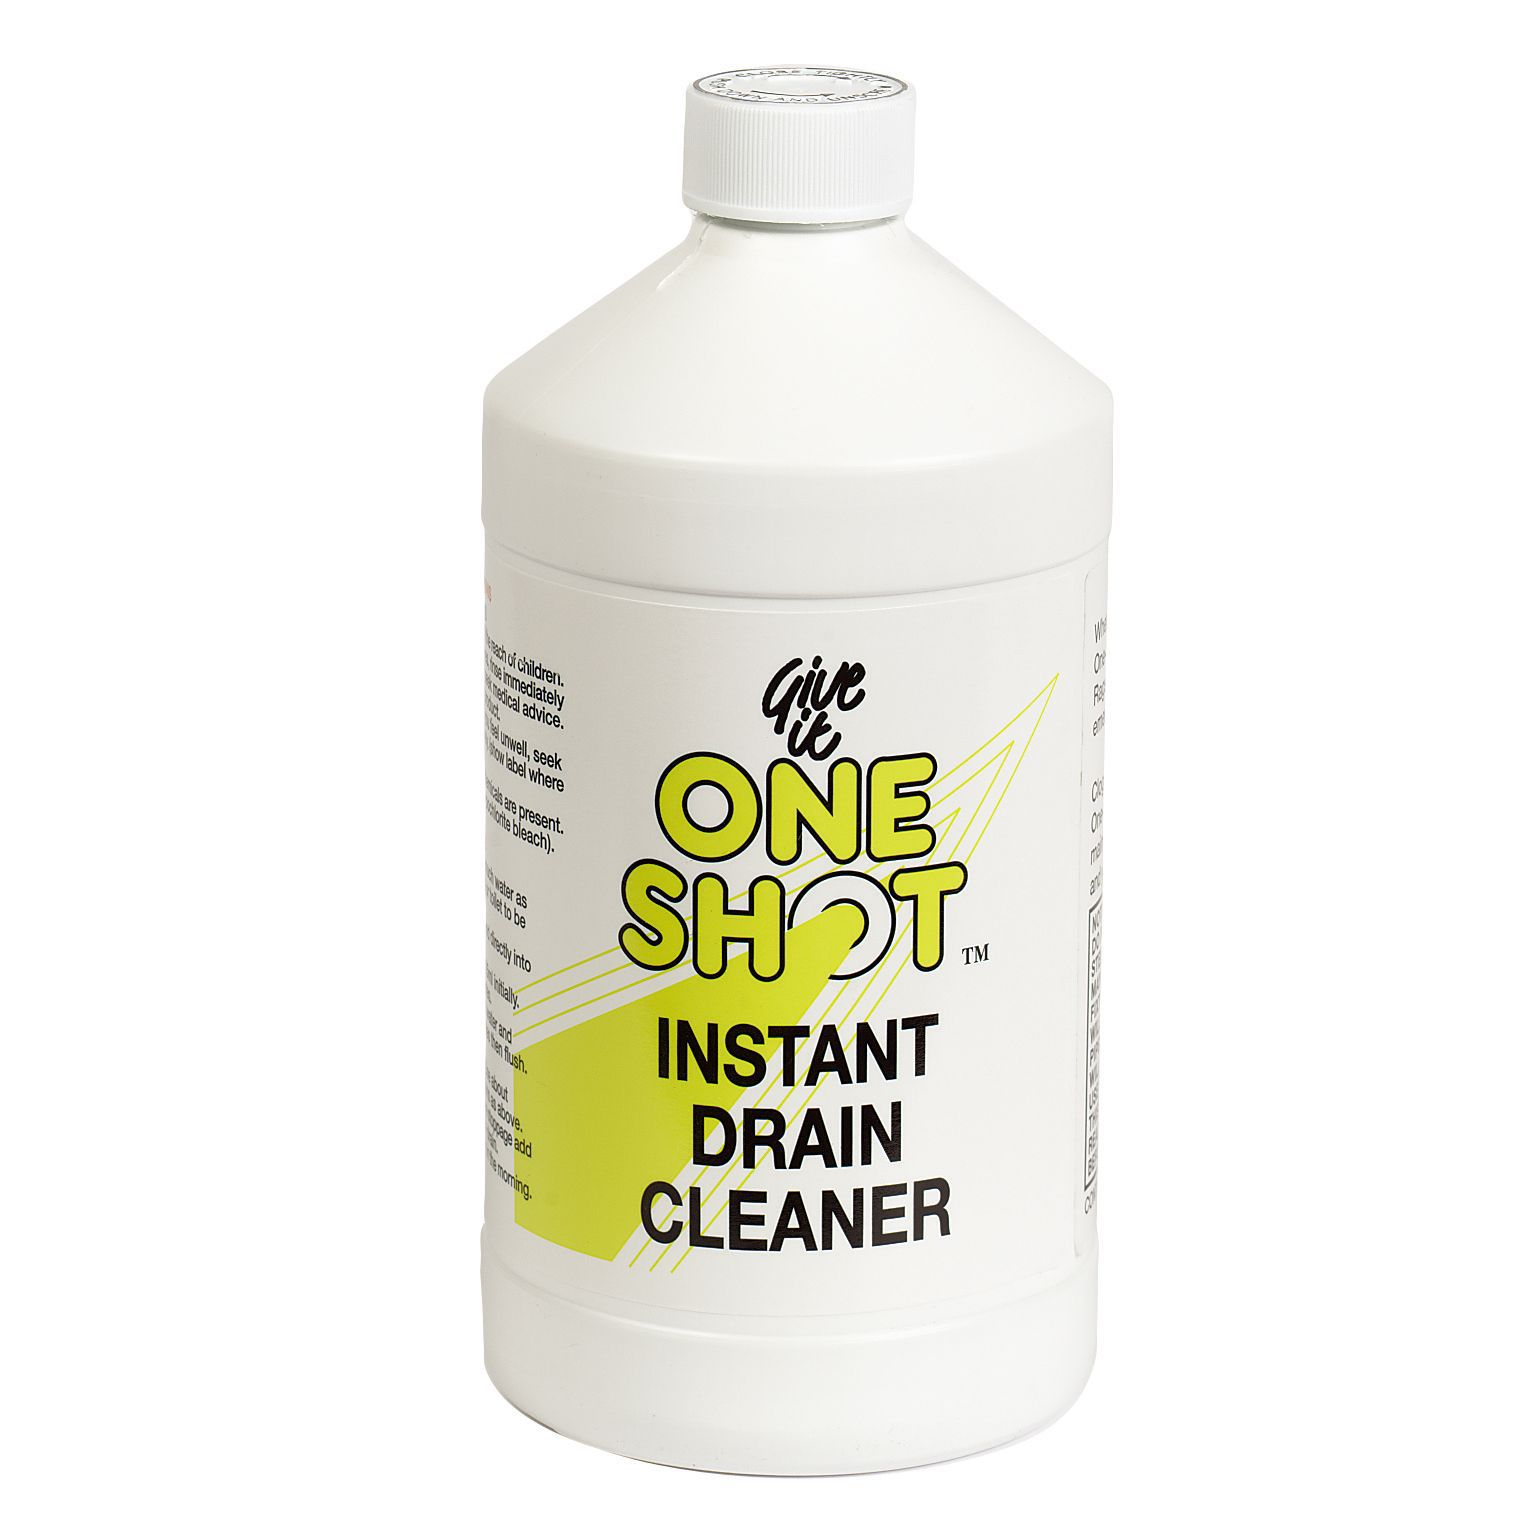 One Shot Drain Cleaner Bottle Departments Diy At B Amp Q